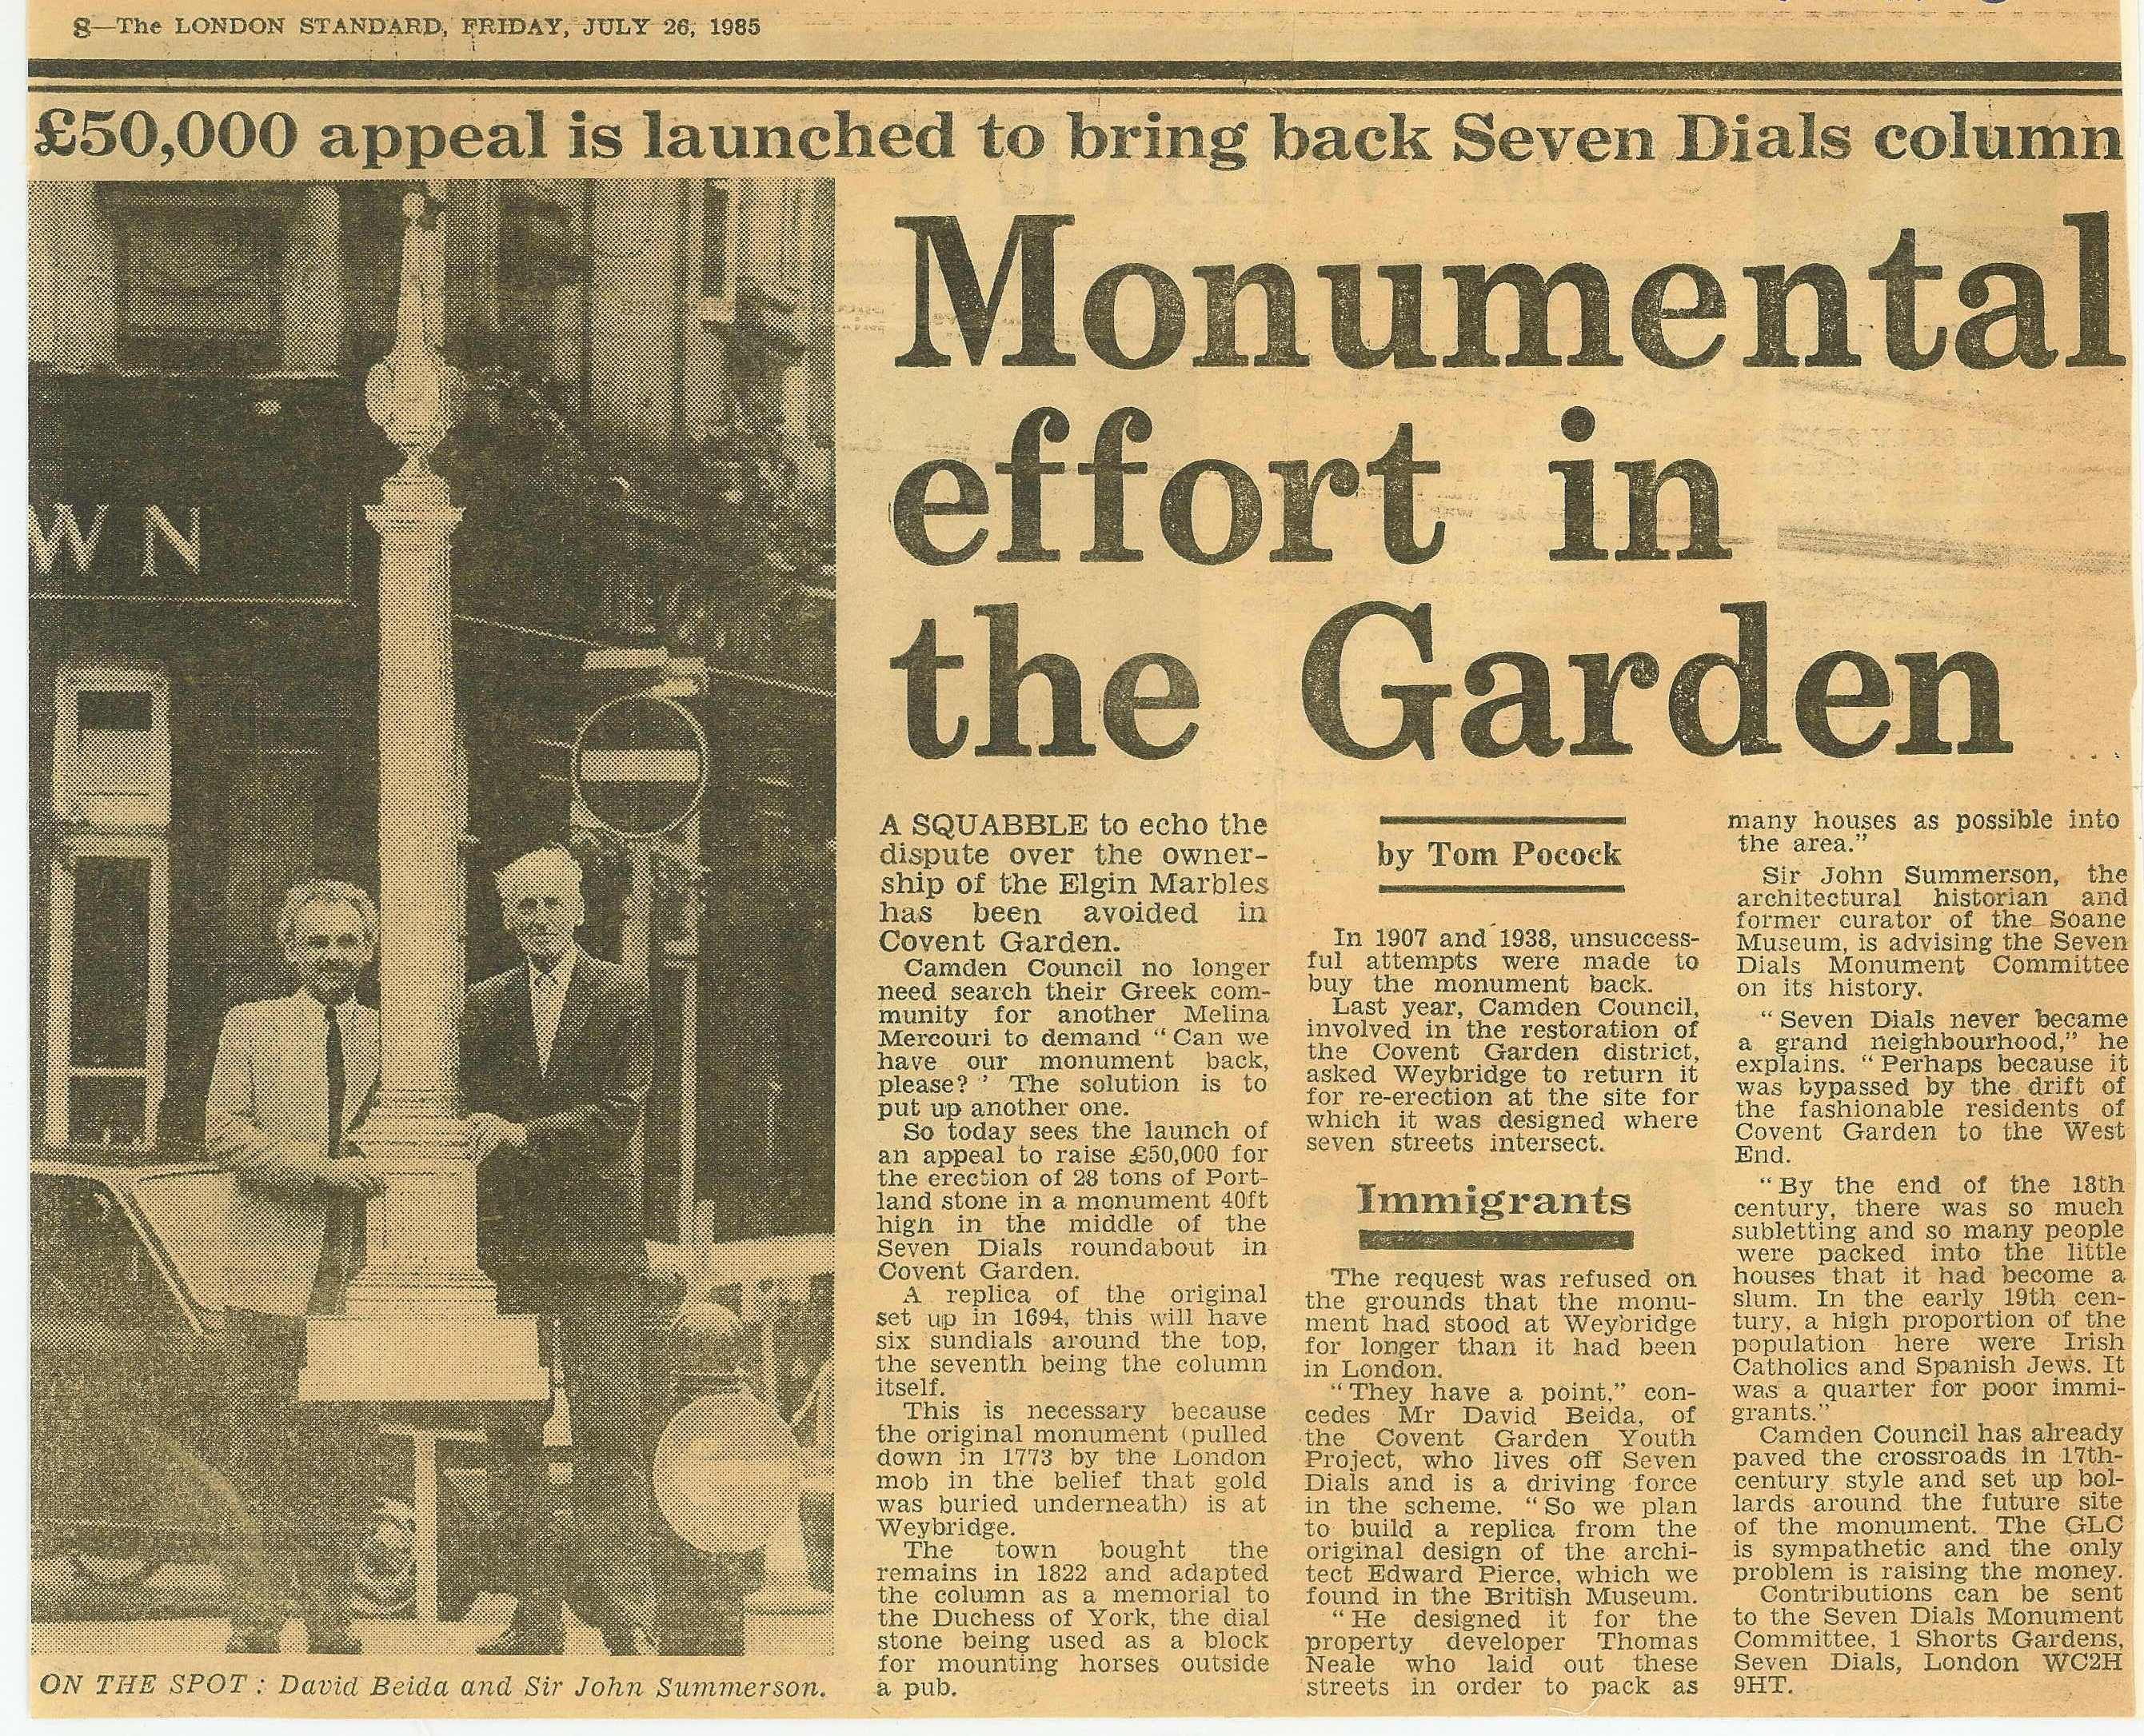 26 July 1985 � The London Standard: Monumental effort in the Garden � �50,000 appeal is launched to bring back Seven Dials column.